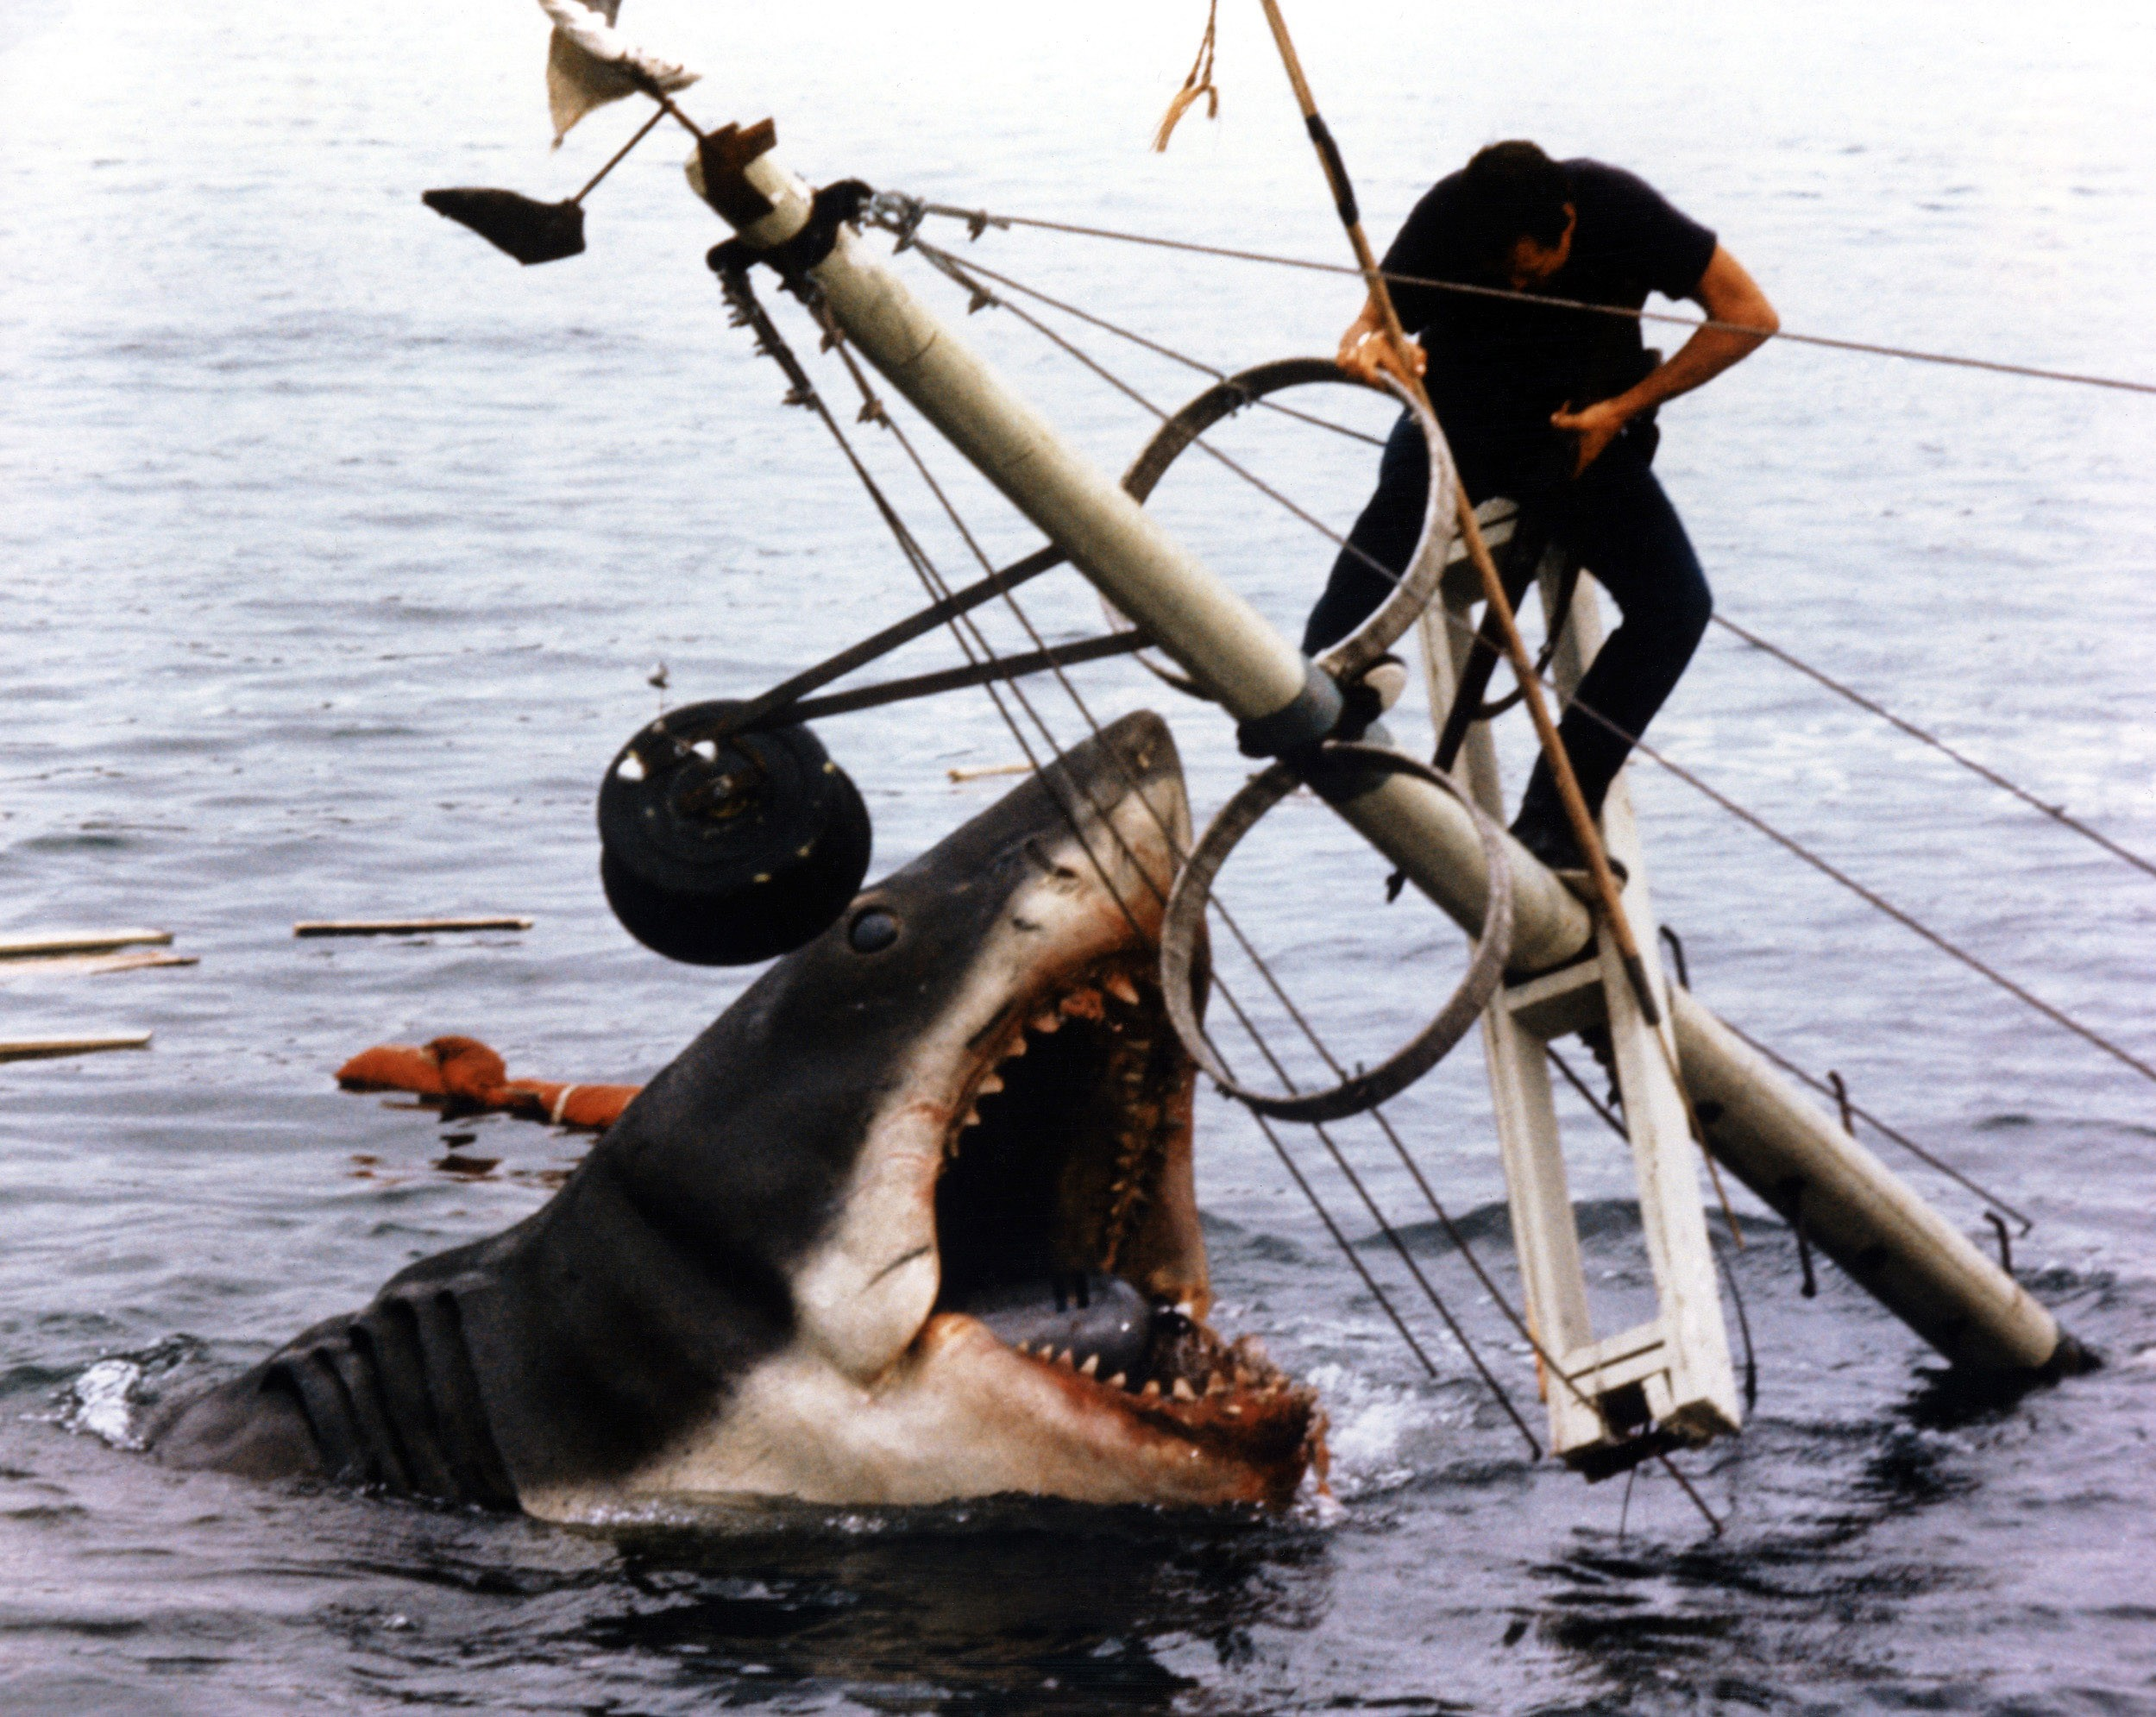 'Jaws' Heading Back to Theaters for 40th Anniversary